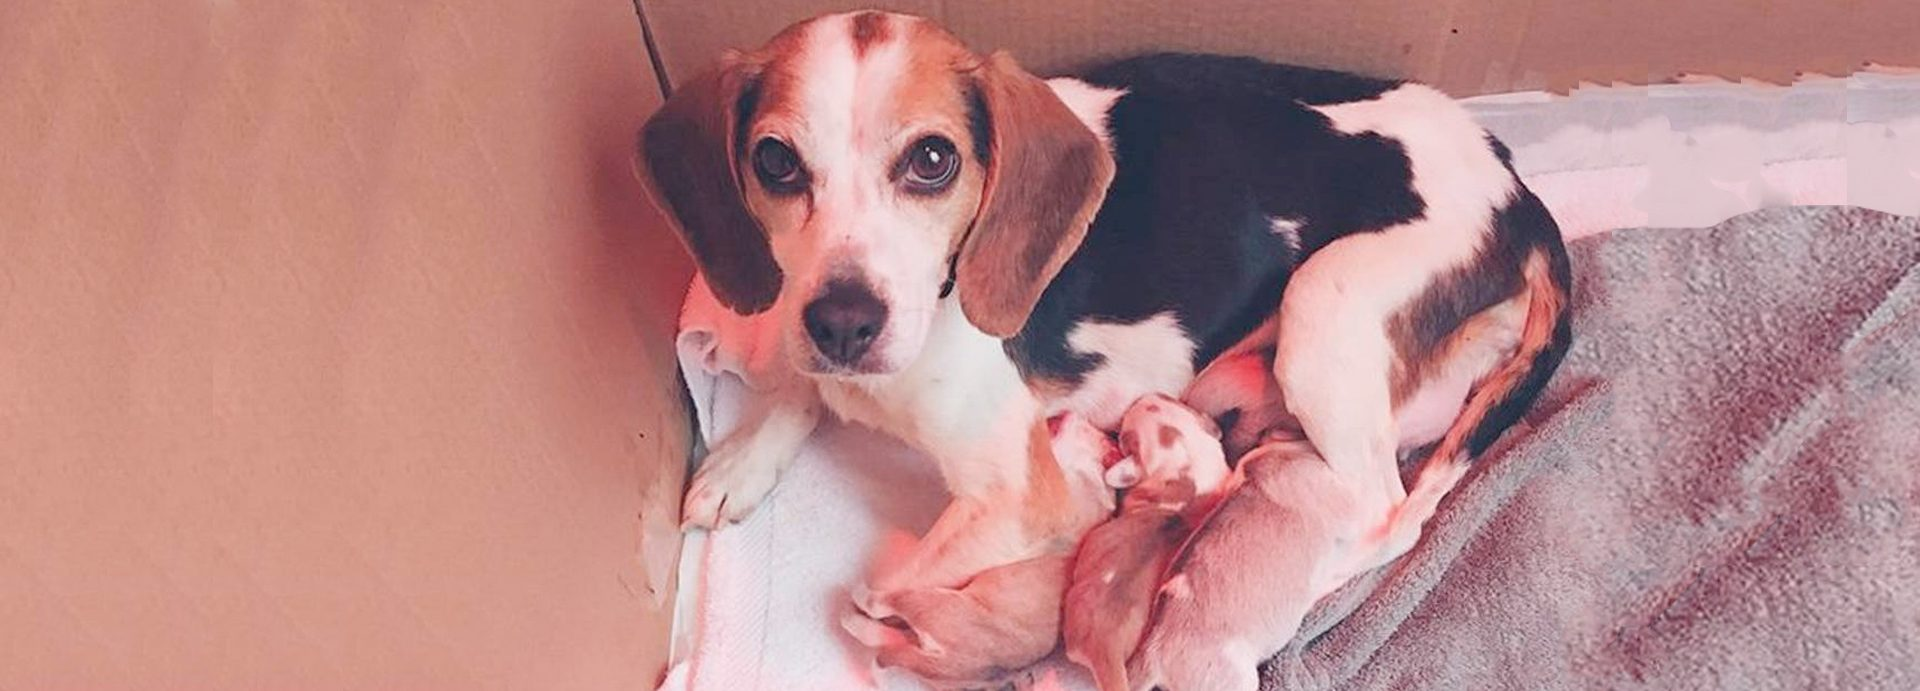 Paralyzed beagle found in Floyd County dump gives her rescuers a big surprise.